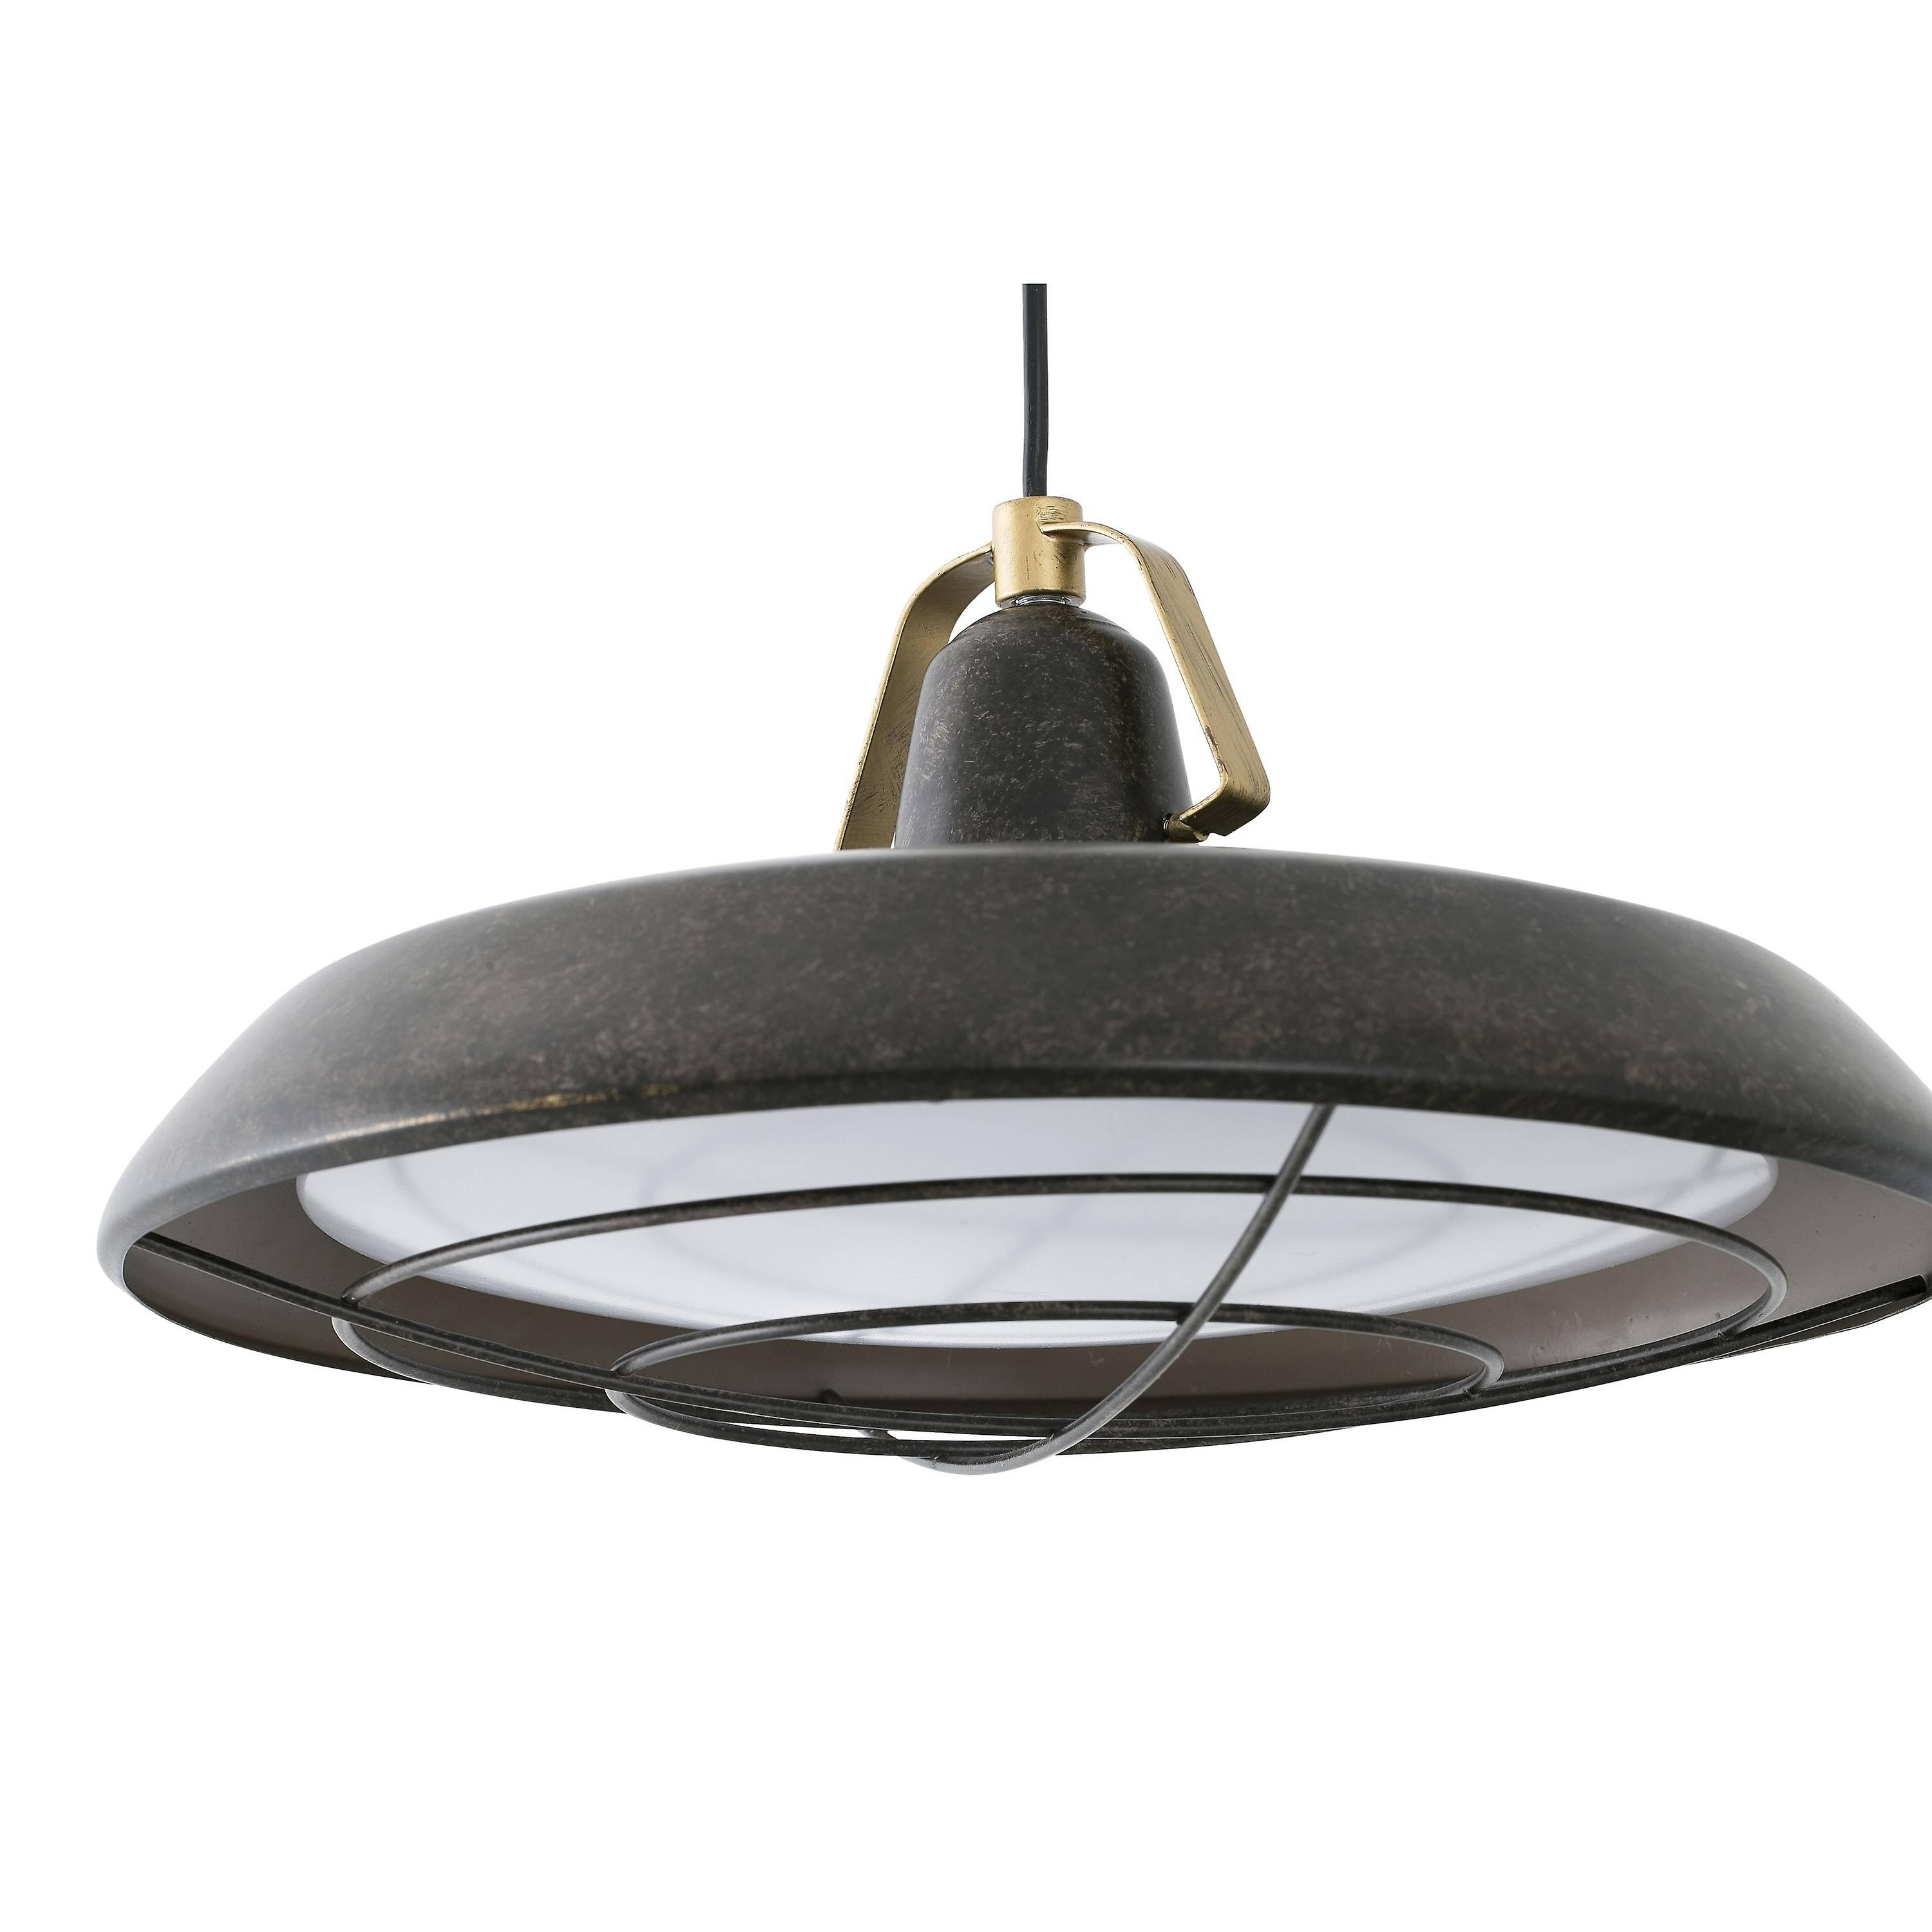 Faro Plec - LED 1 Light Outdoor Dome Ceiling Pendant Light Old Brown IP44